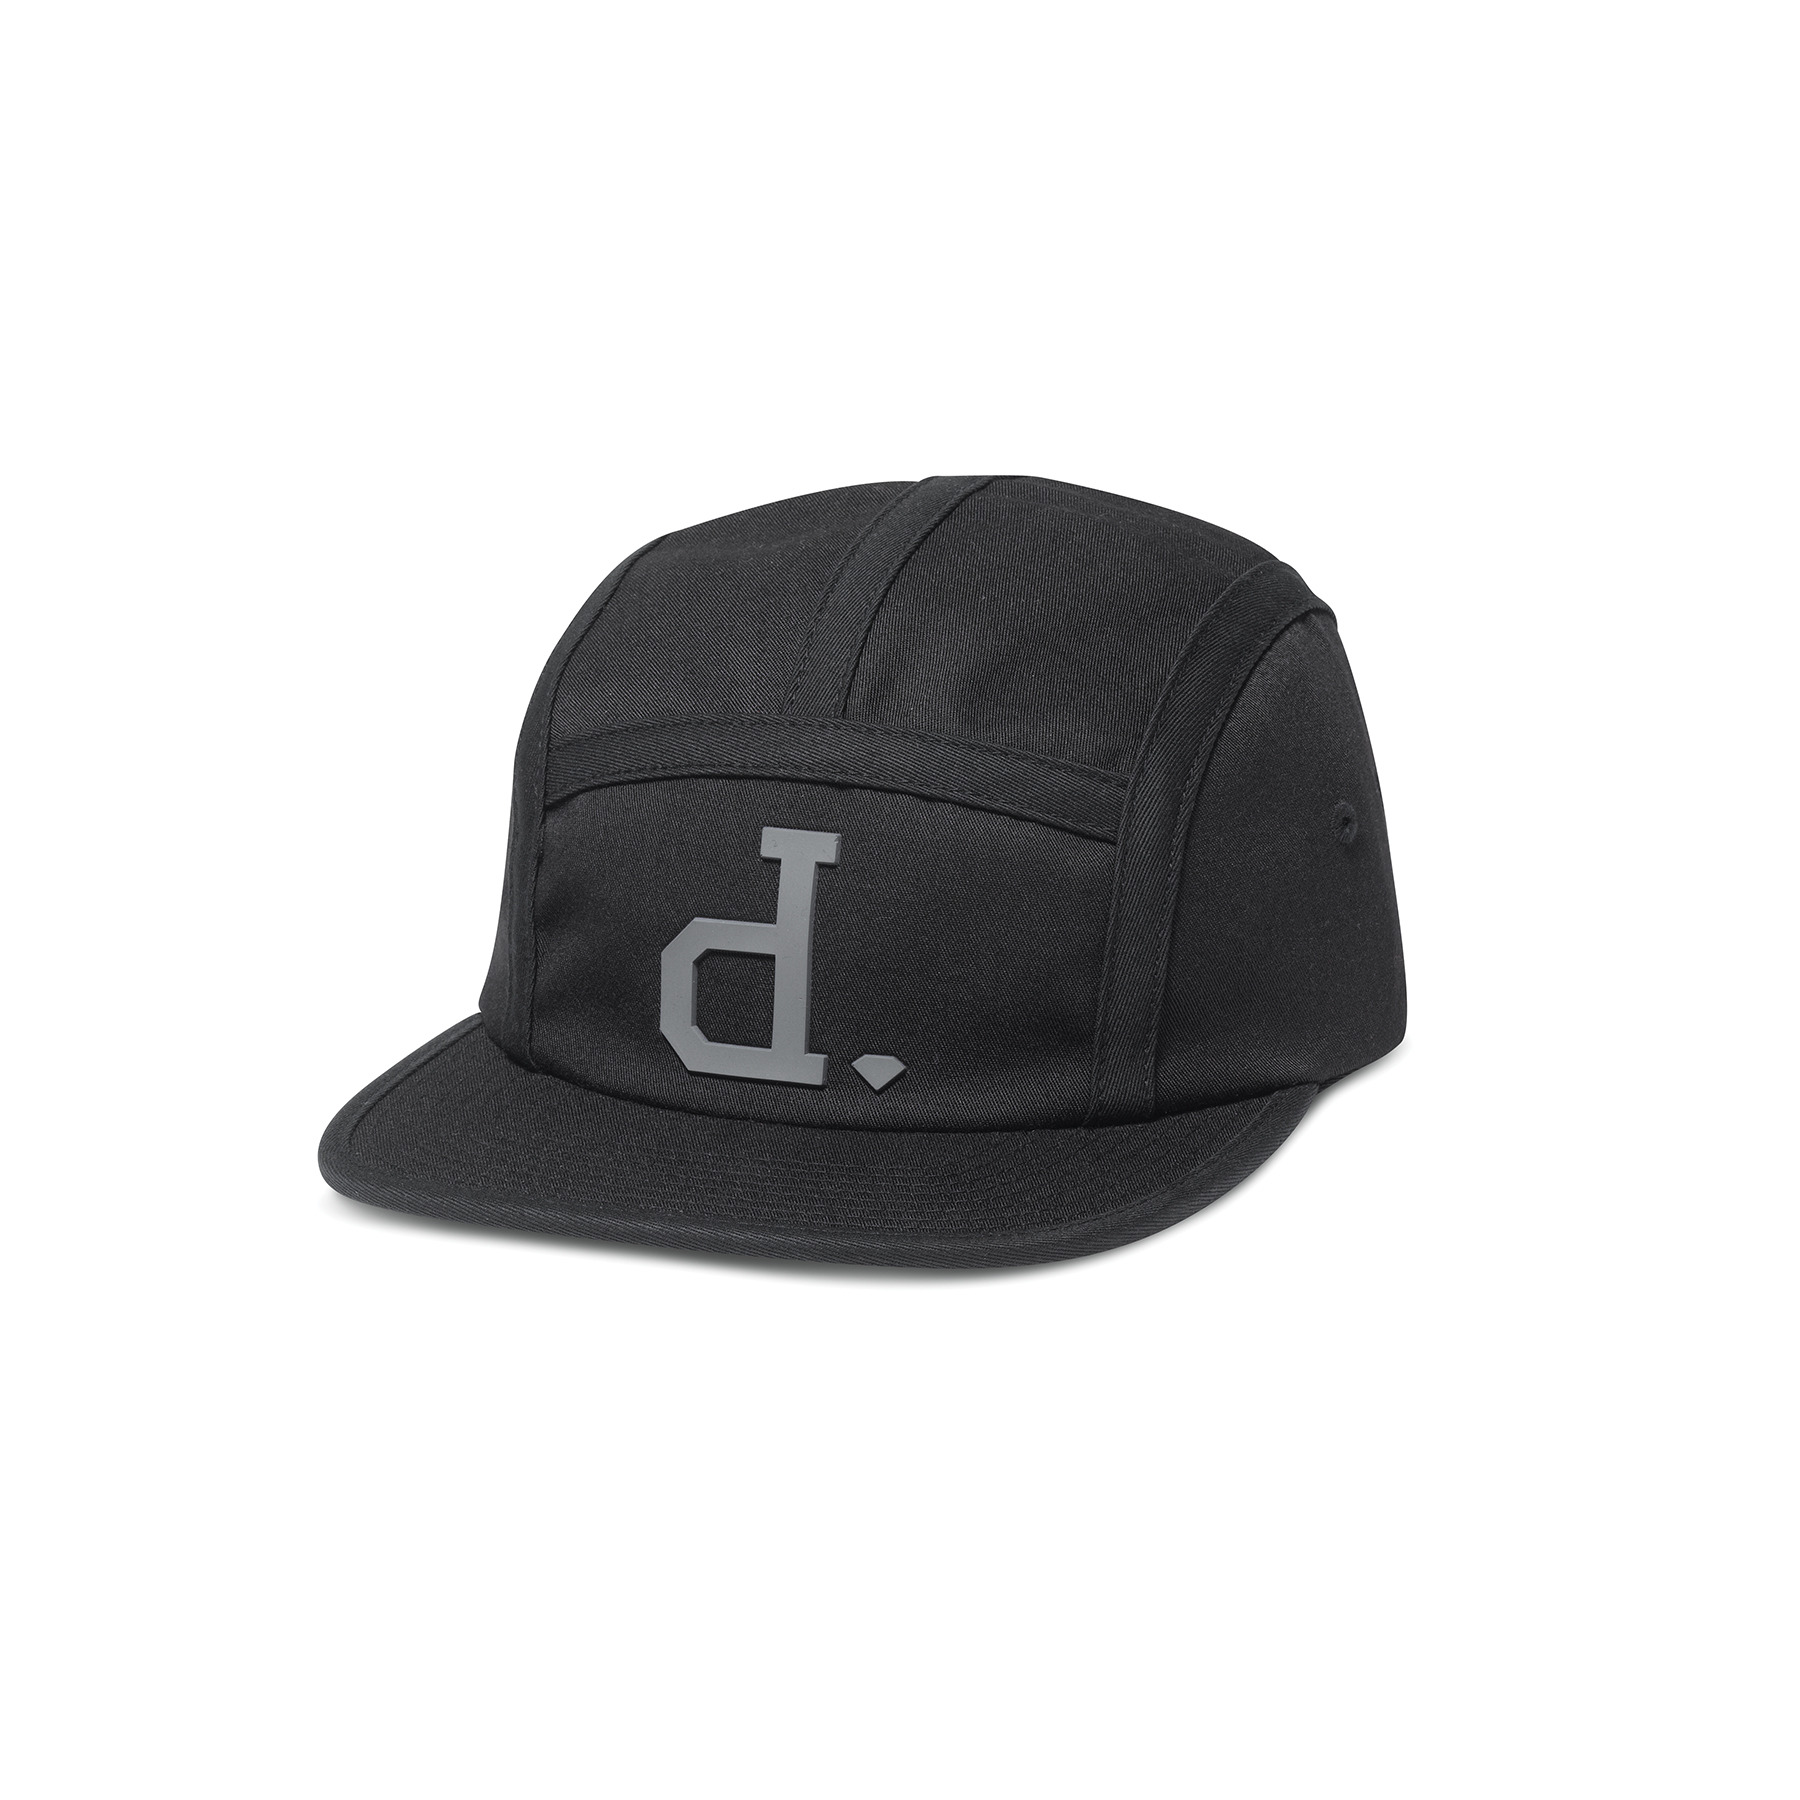 sp15_headwear__0002_dmnd-sp15-hats-unpolotech-blk.jpg